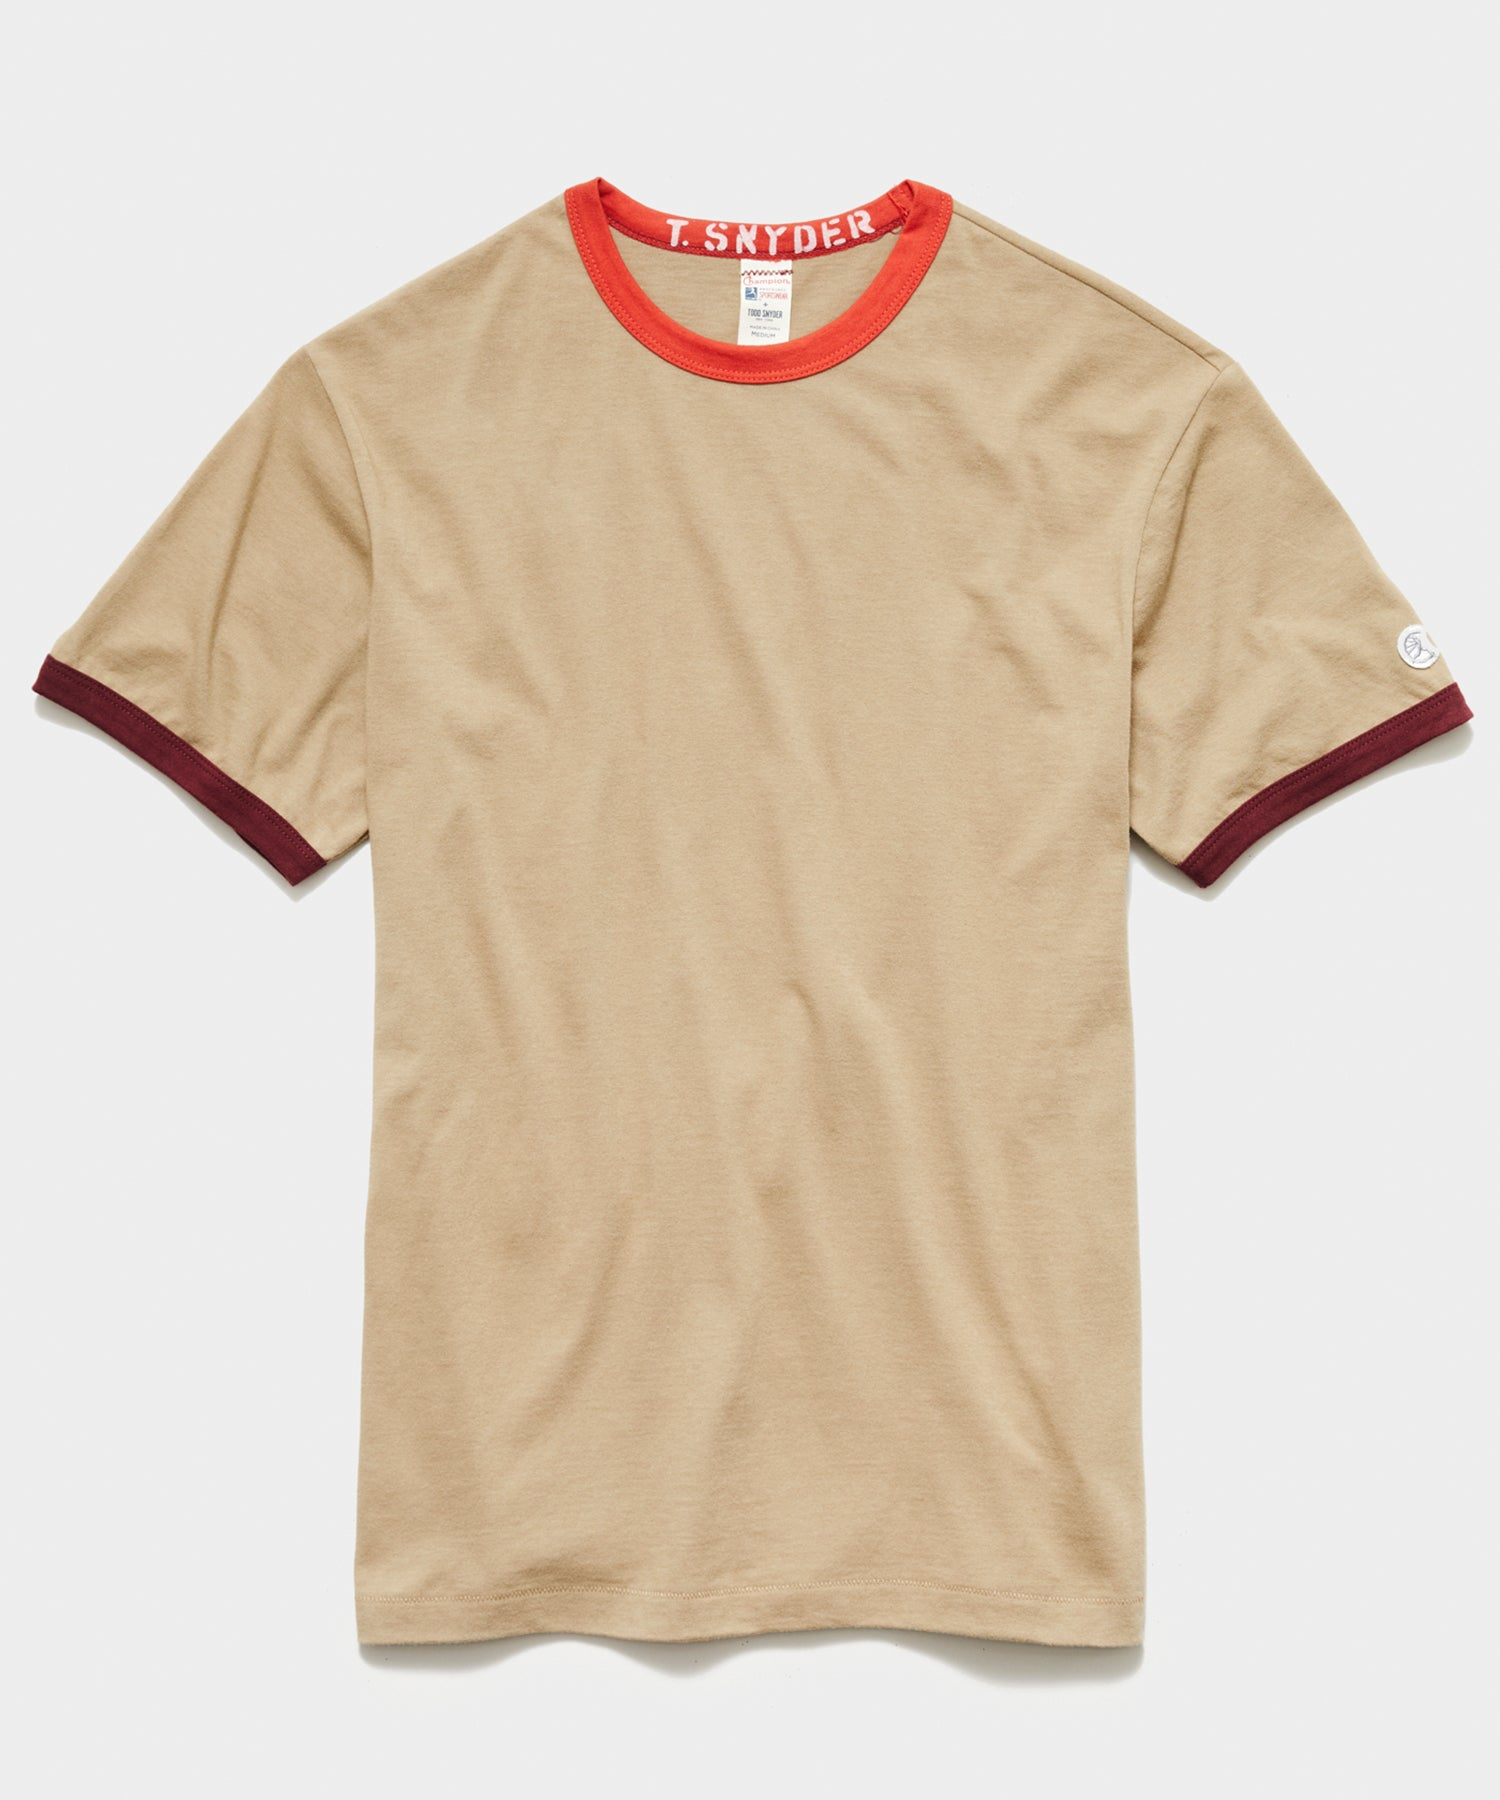 Champion Ringer Tee in Tan